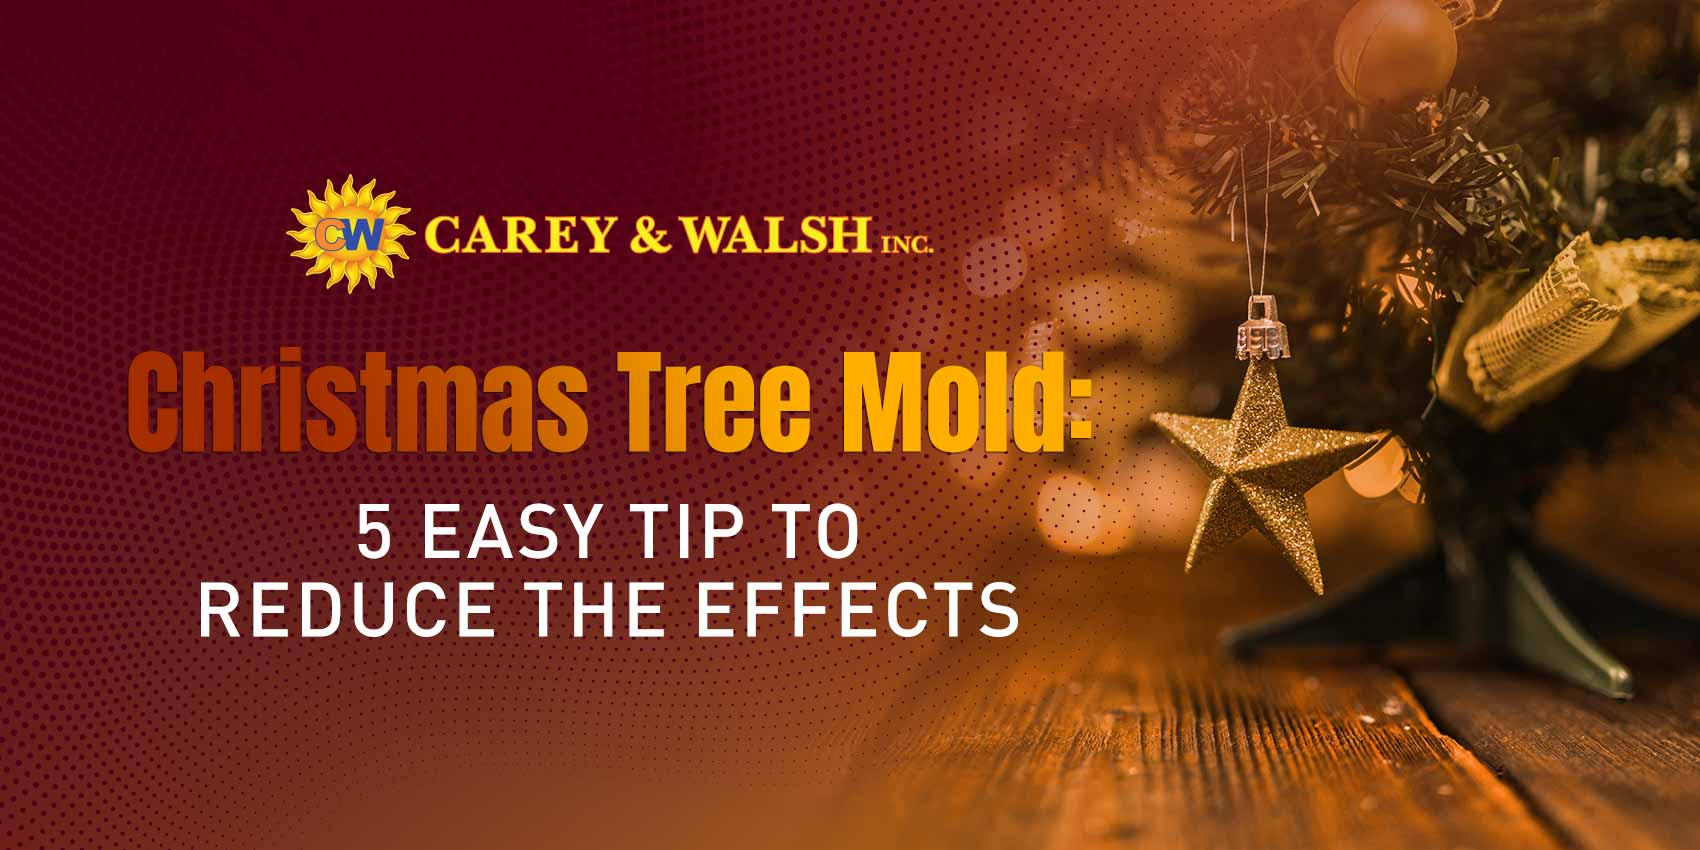 Christmas Tree Mold: 5 Easy Tip to Reduce the Effects